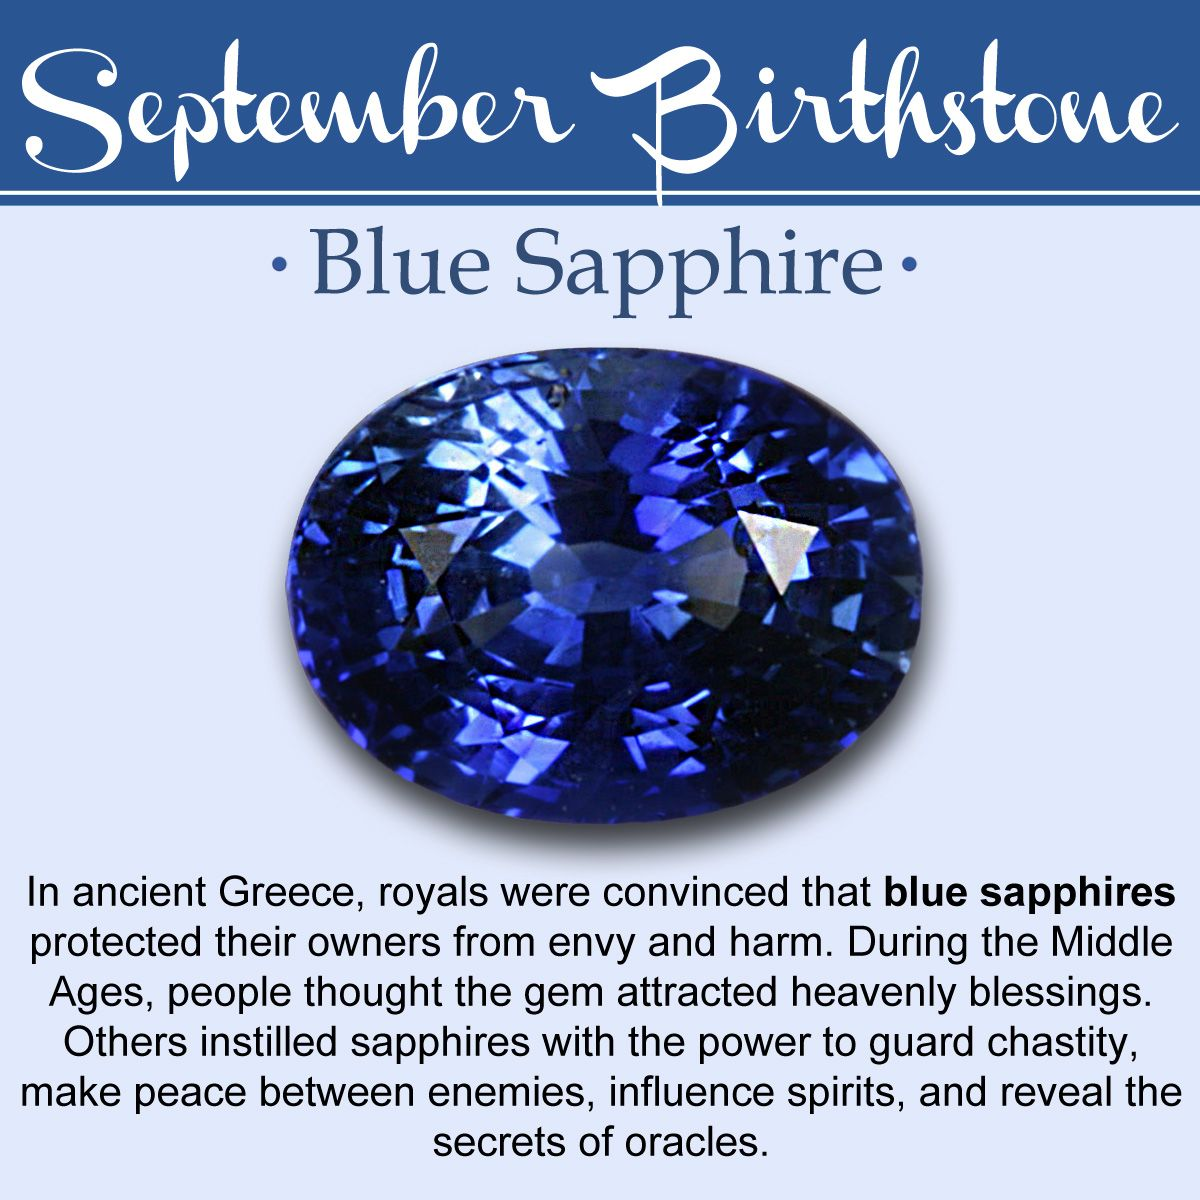 September Birthstone Meanings